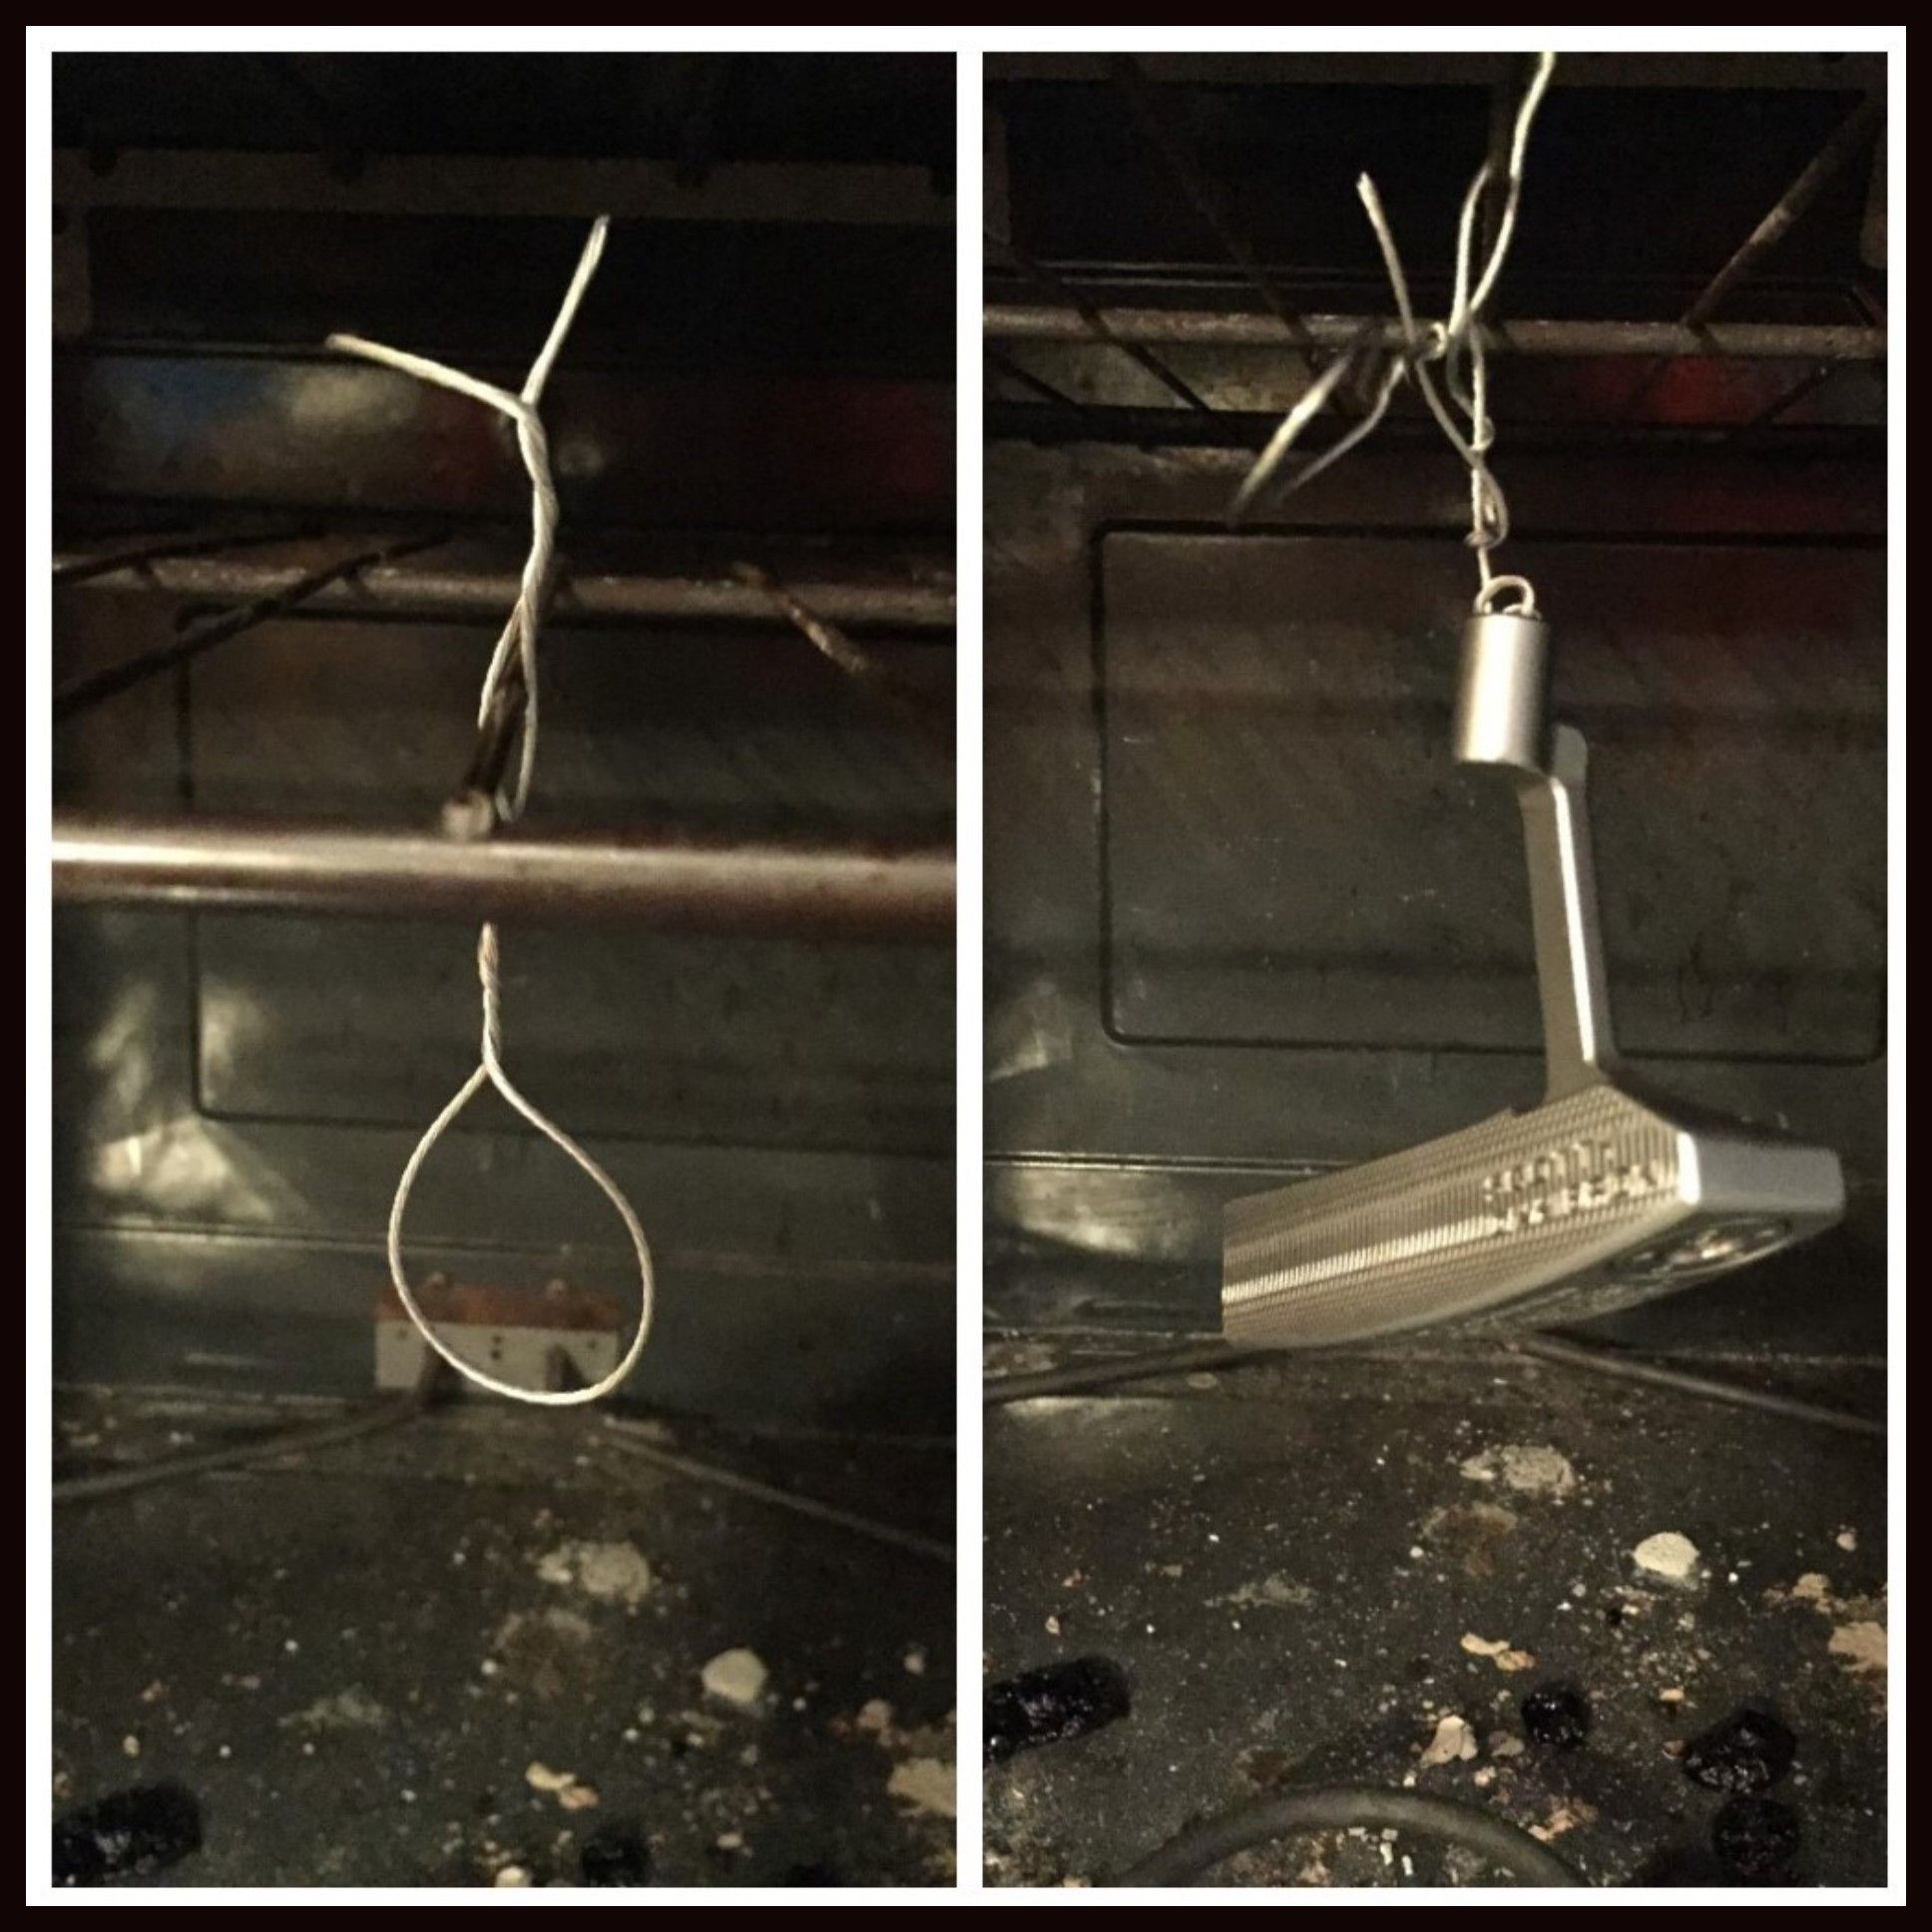 using hanging wire to hold putter up in oven